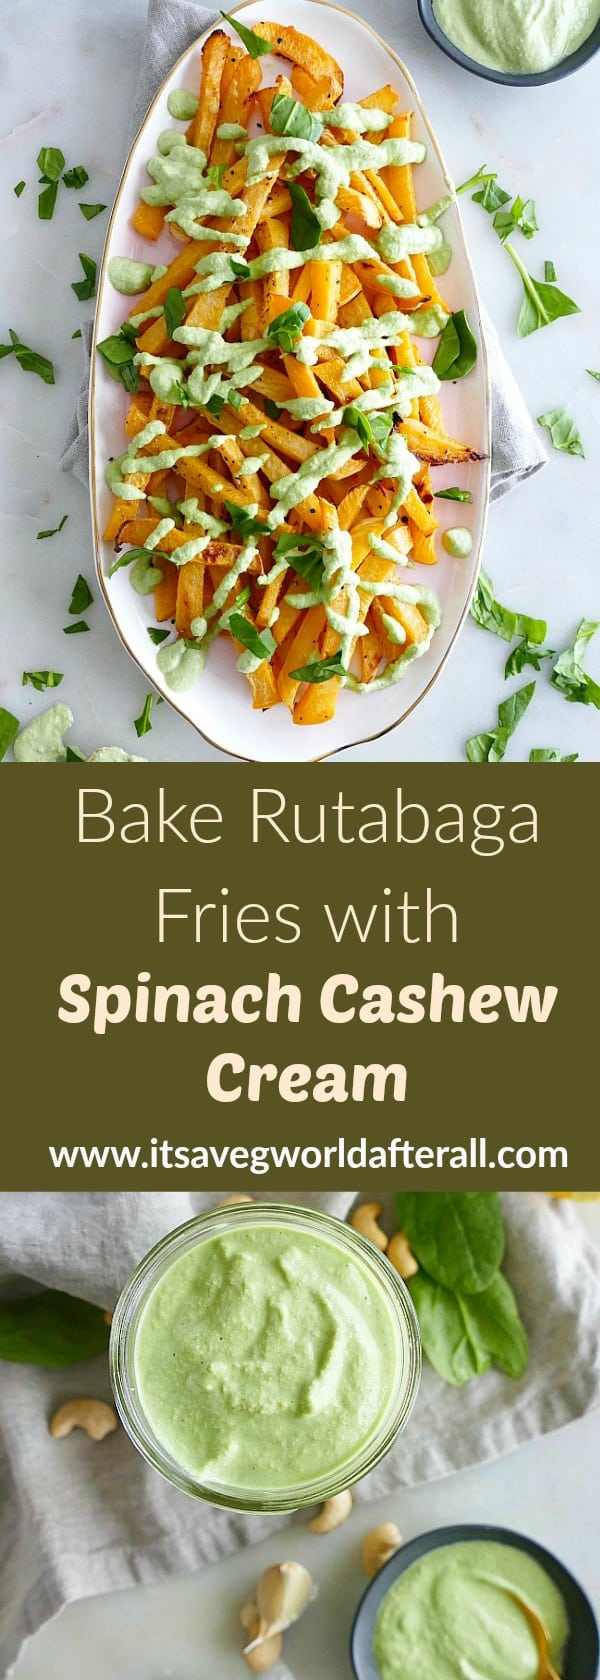 Baked Rutabaga Fries